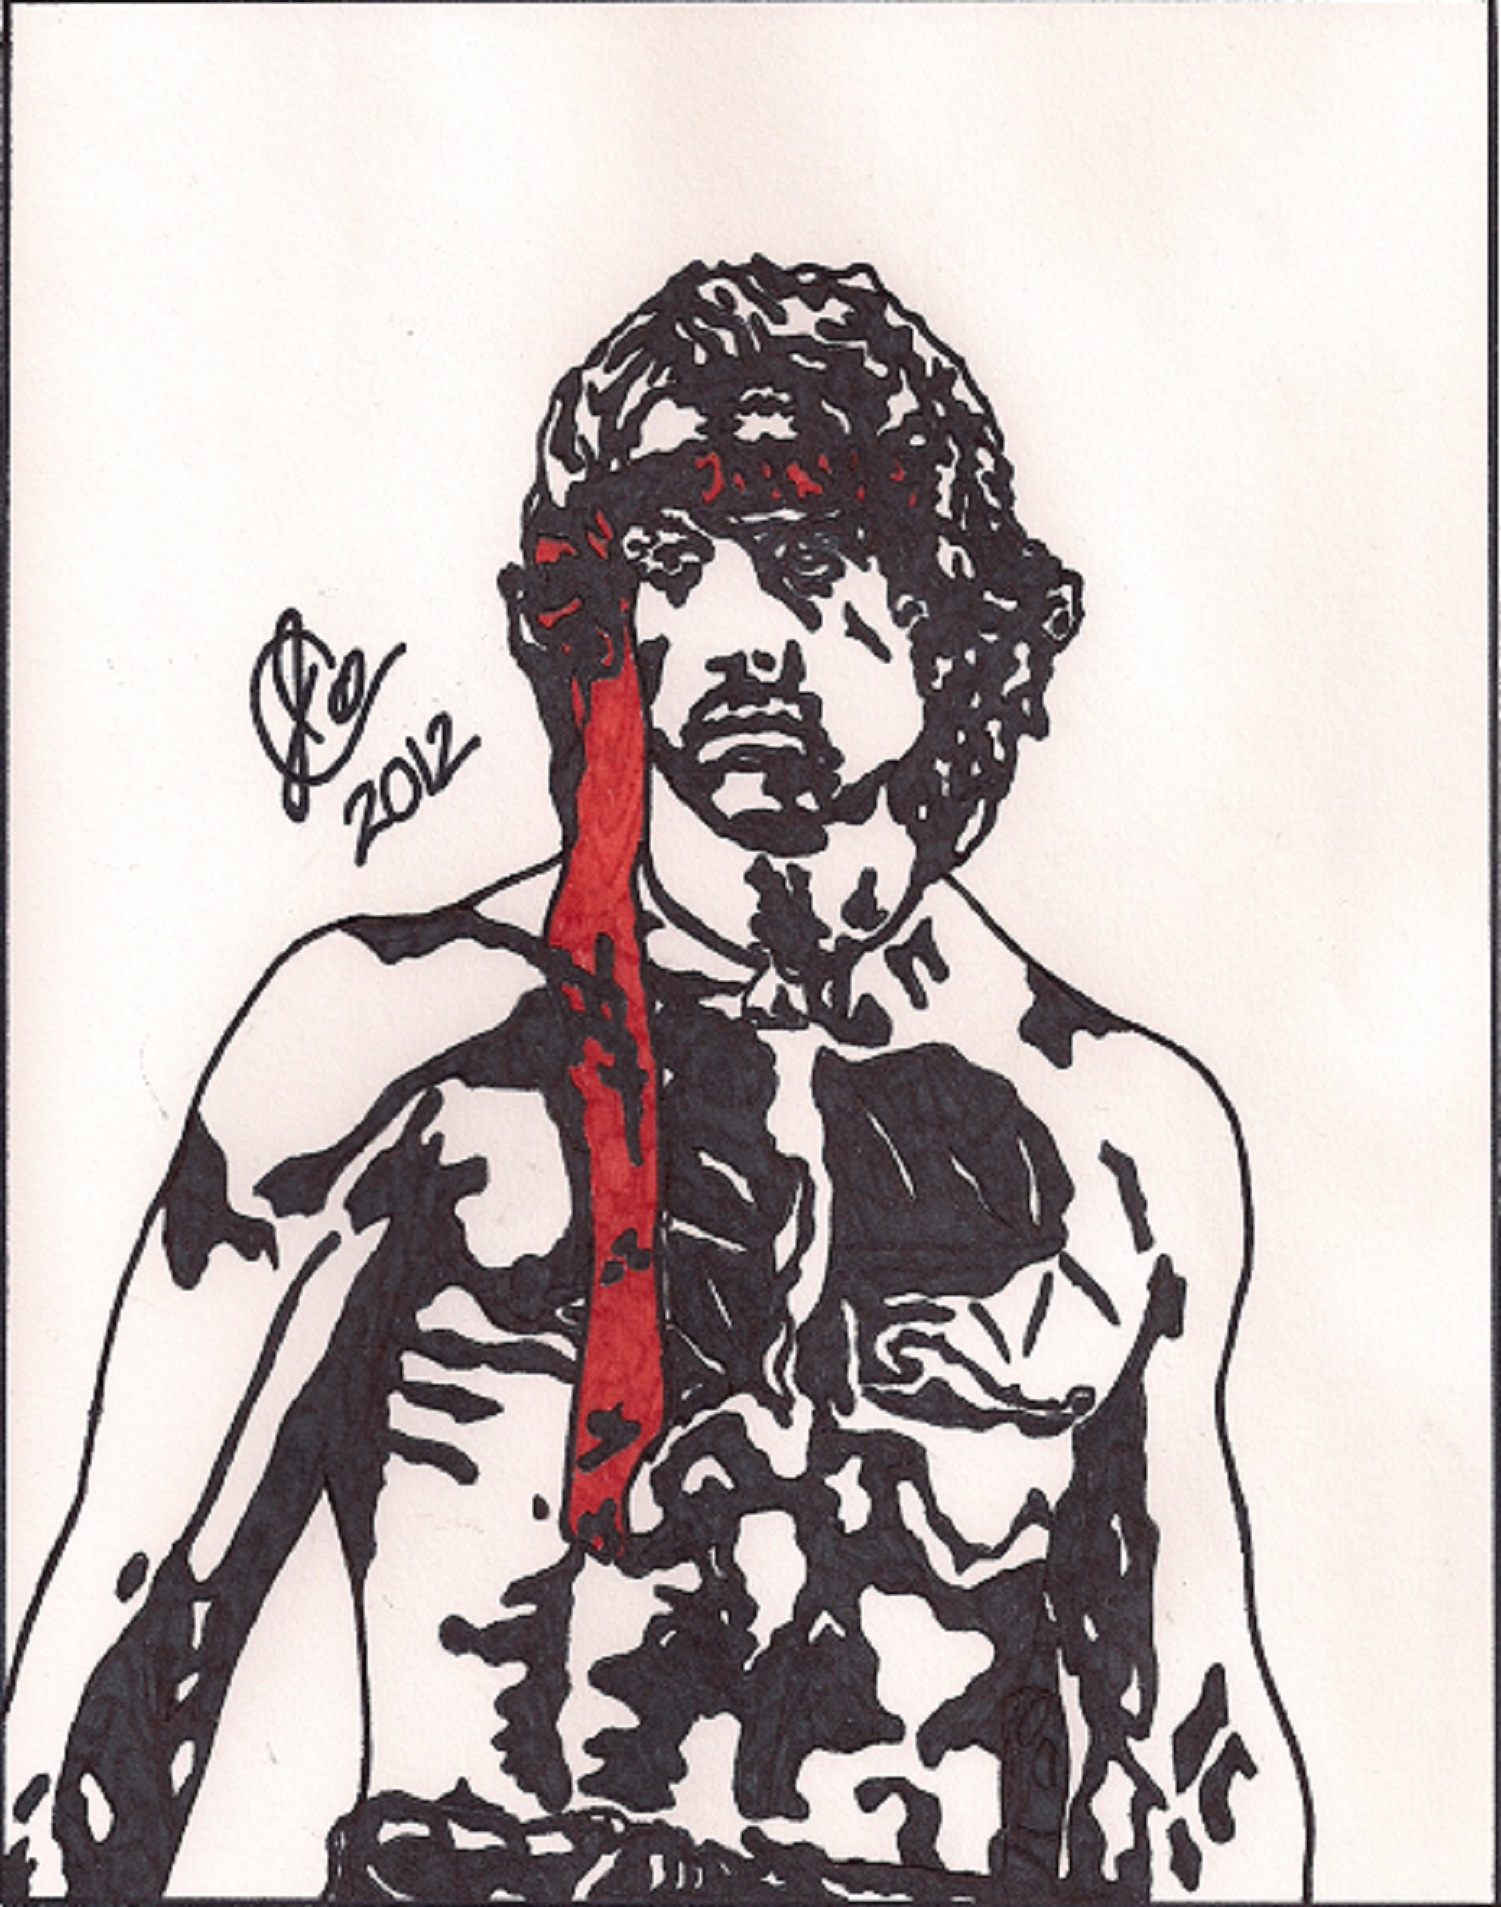 1501x1907 Rambo First Blood Part Ii Ink Illustration Jeremiah Colley